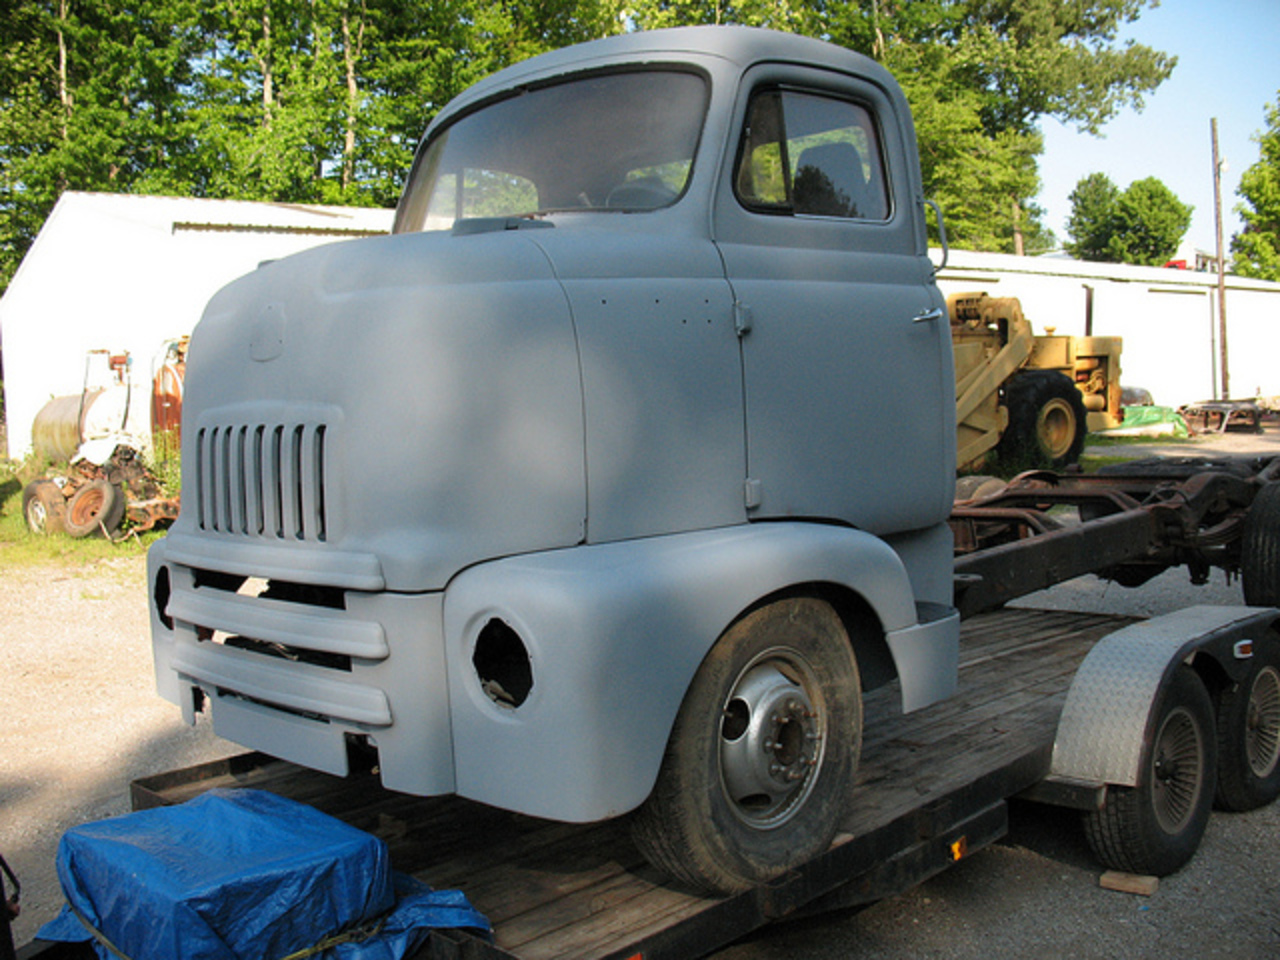 FOR SALE: 1952 International L-160 Series COE | Flickr - Photo ...